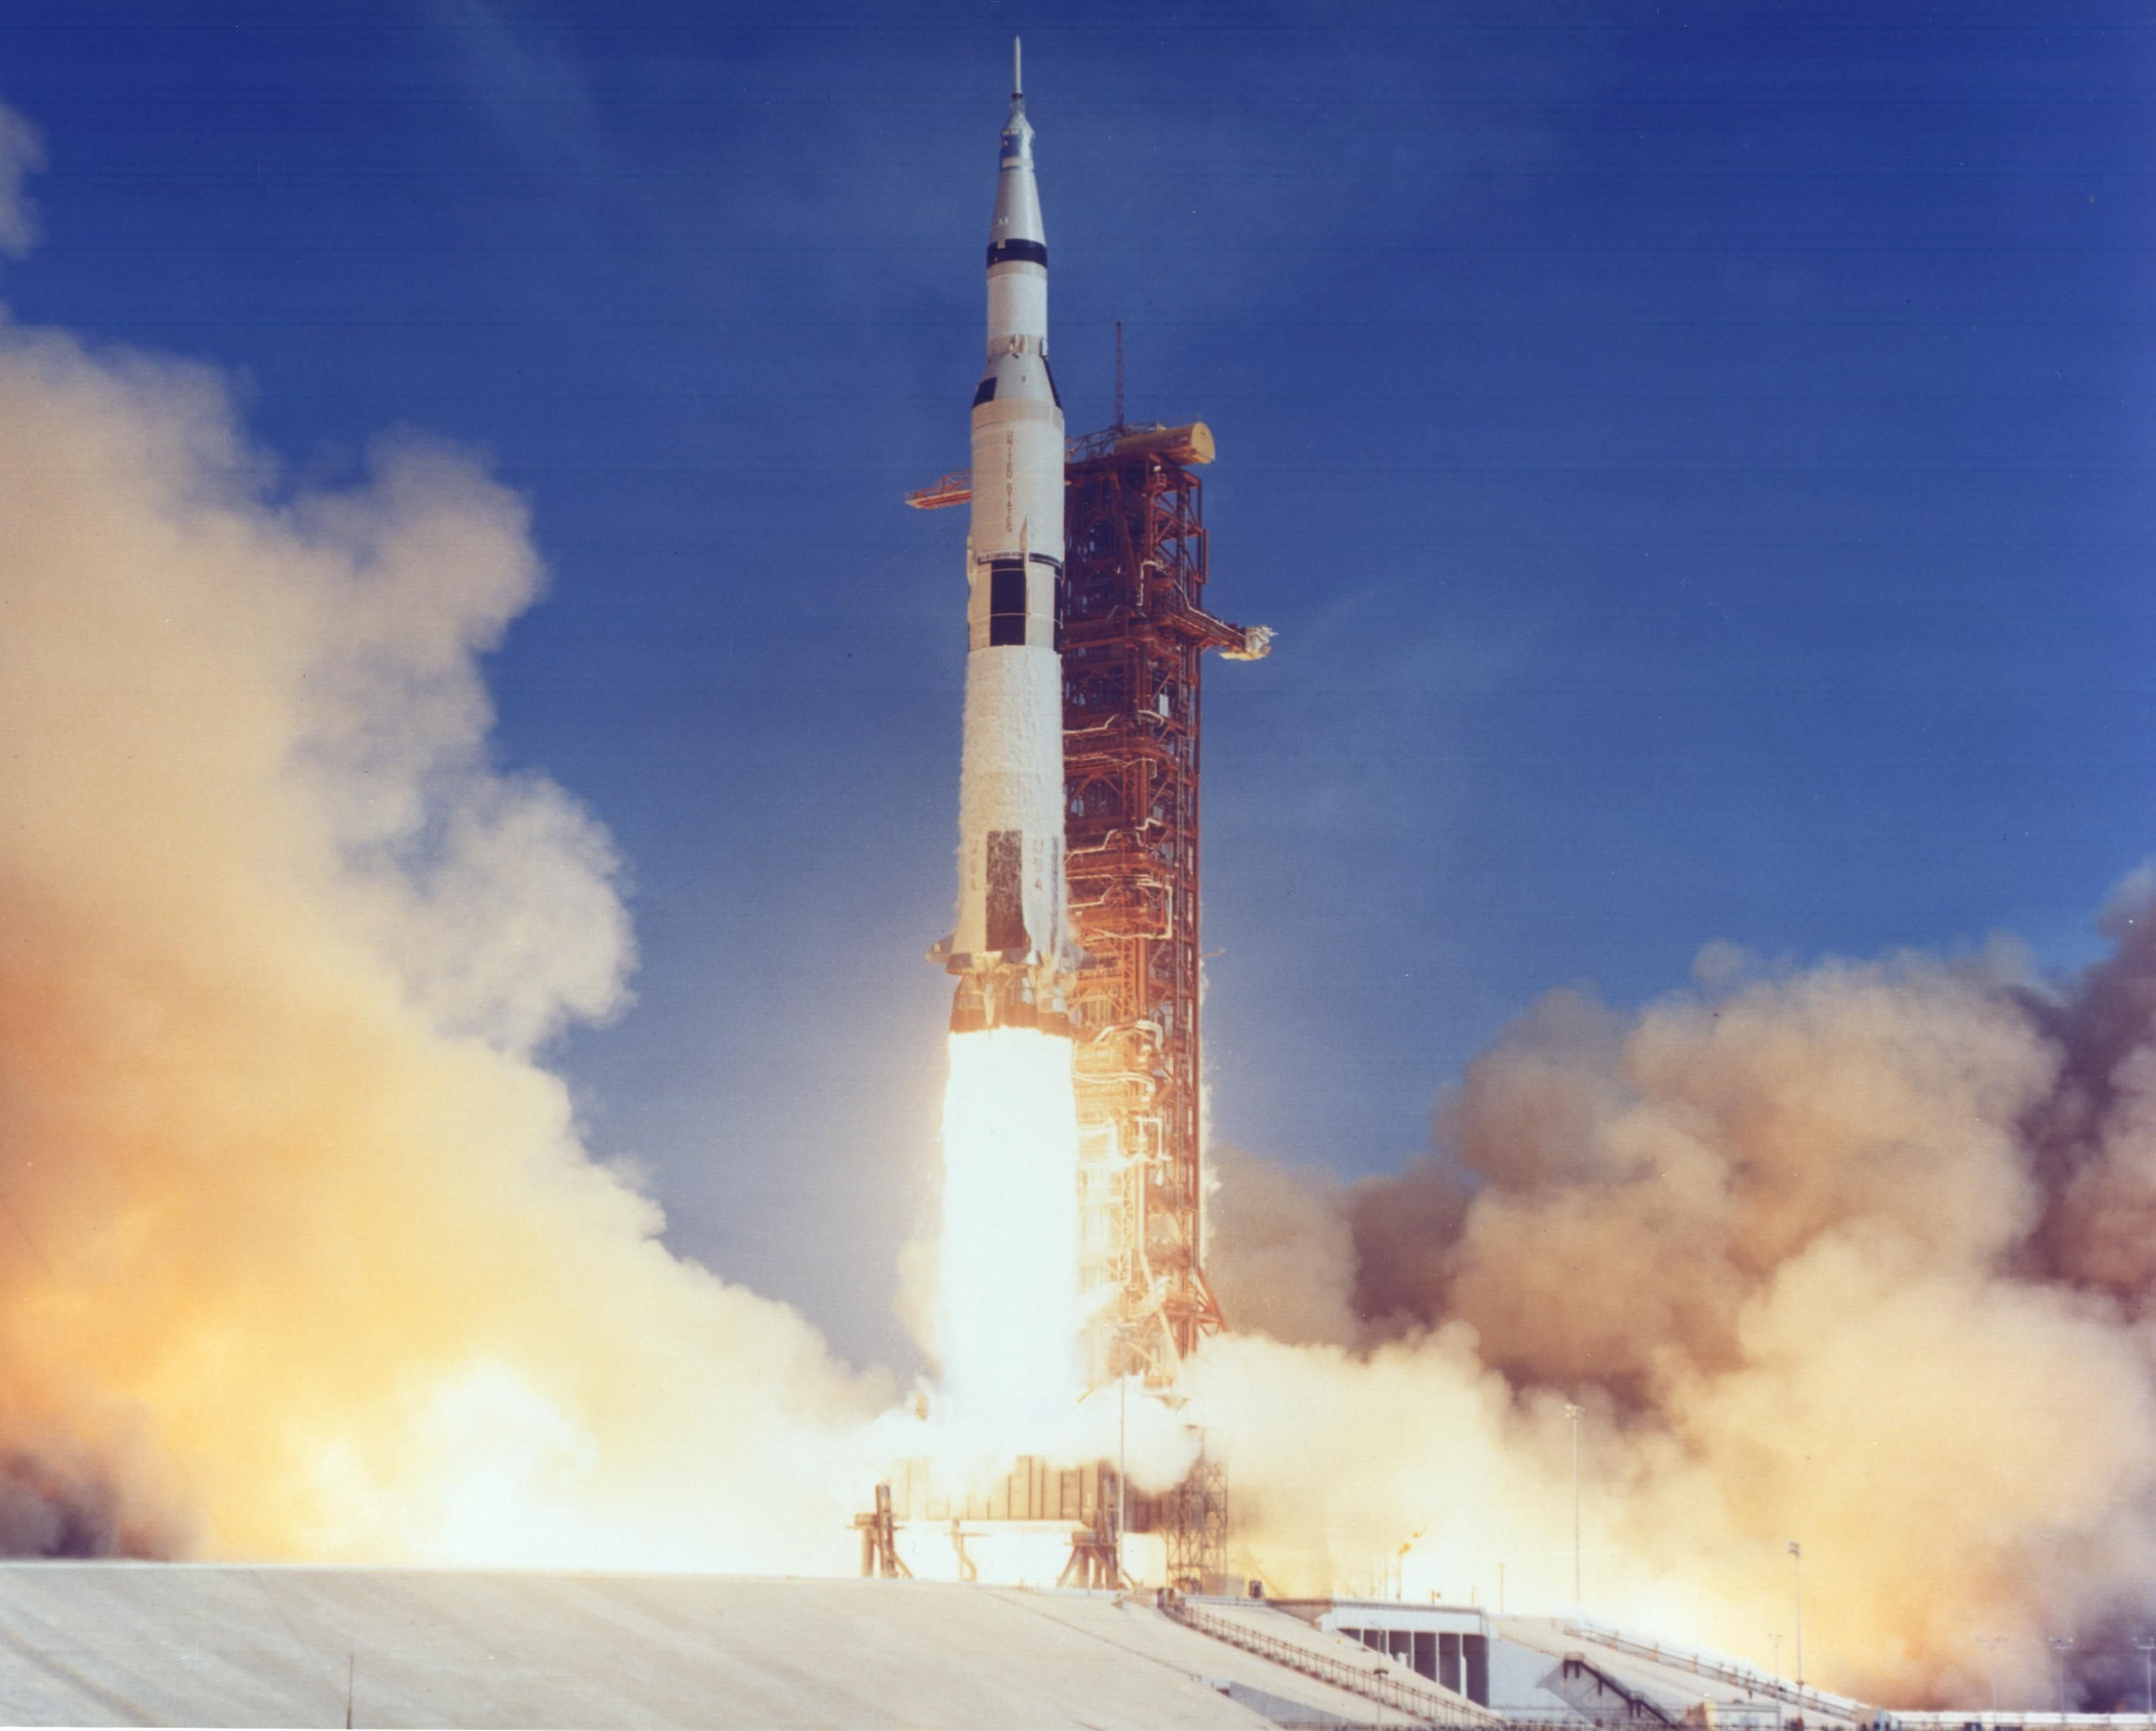 Launch of Apollo 11 on the first moon landing mission NASA New 8x10 Photo Verzamelingen